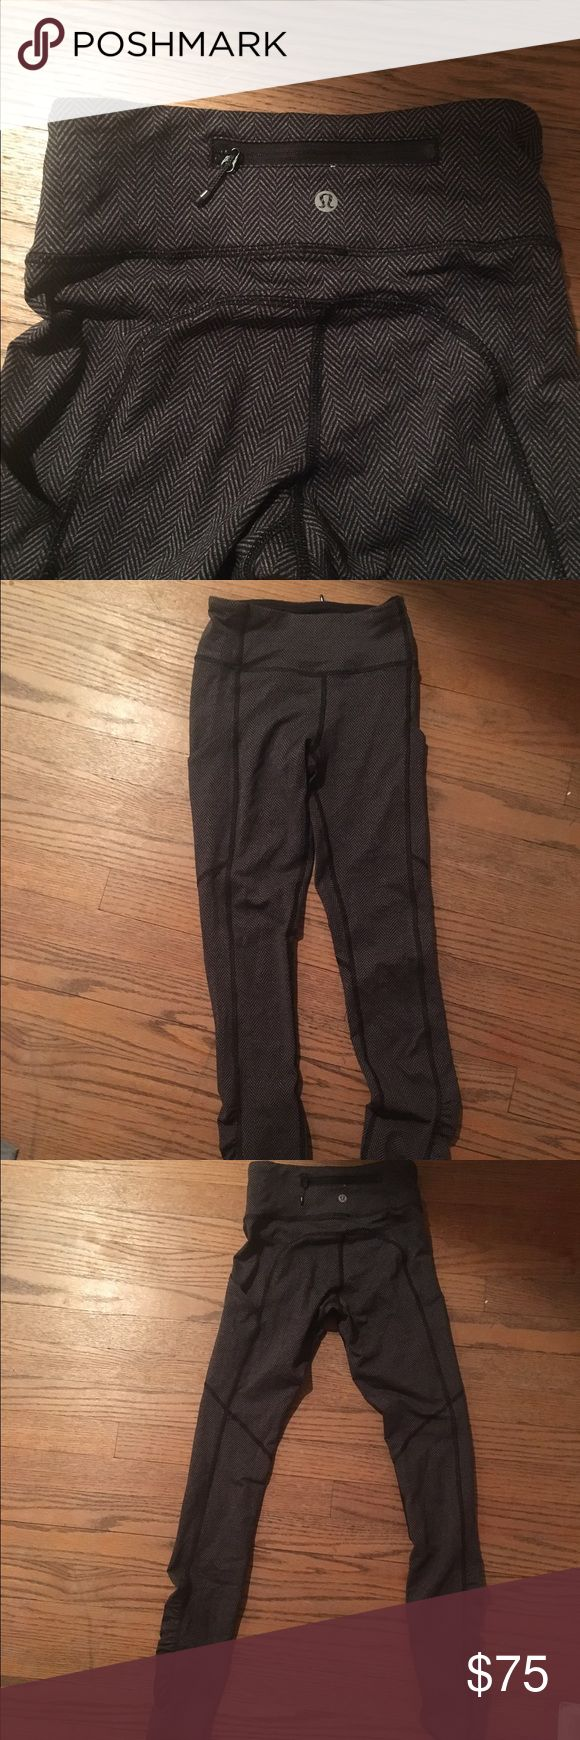 Lululemon Speedtight leggings Lululemon gray leggings, great for working out or running and super stretchy and comfortable. Worn a few times, but still in great condition. Open to offers lululemon athletica Pants Leggings